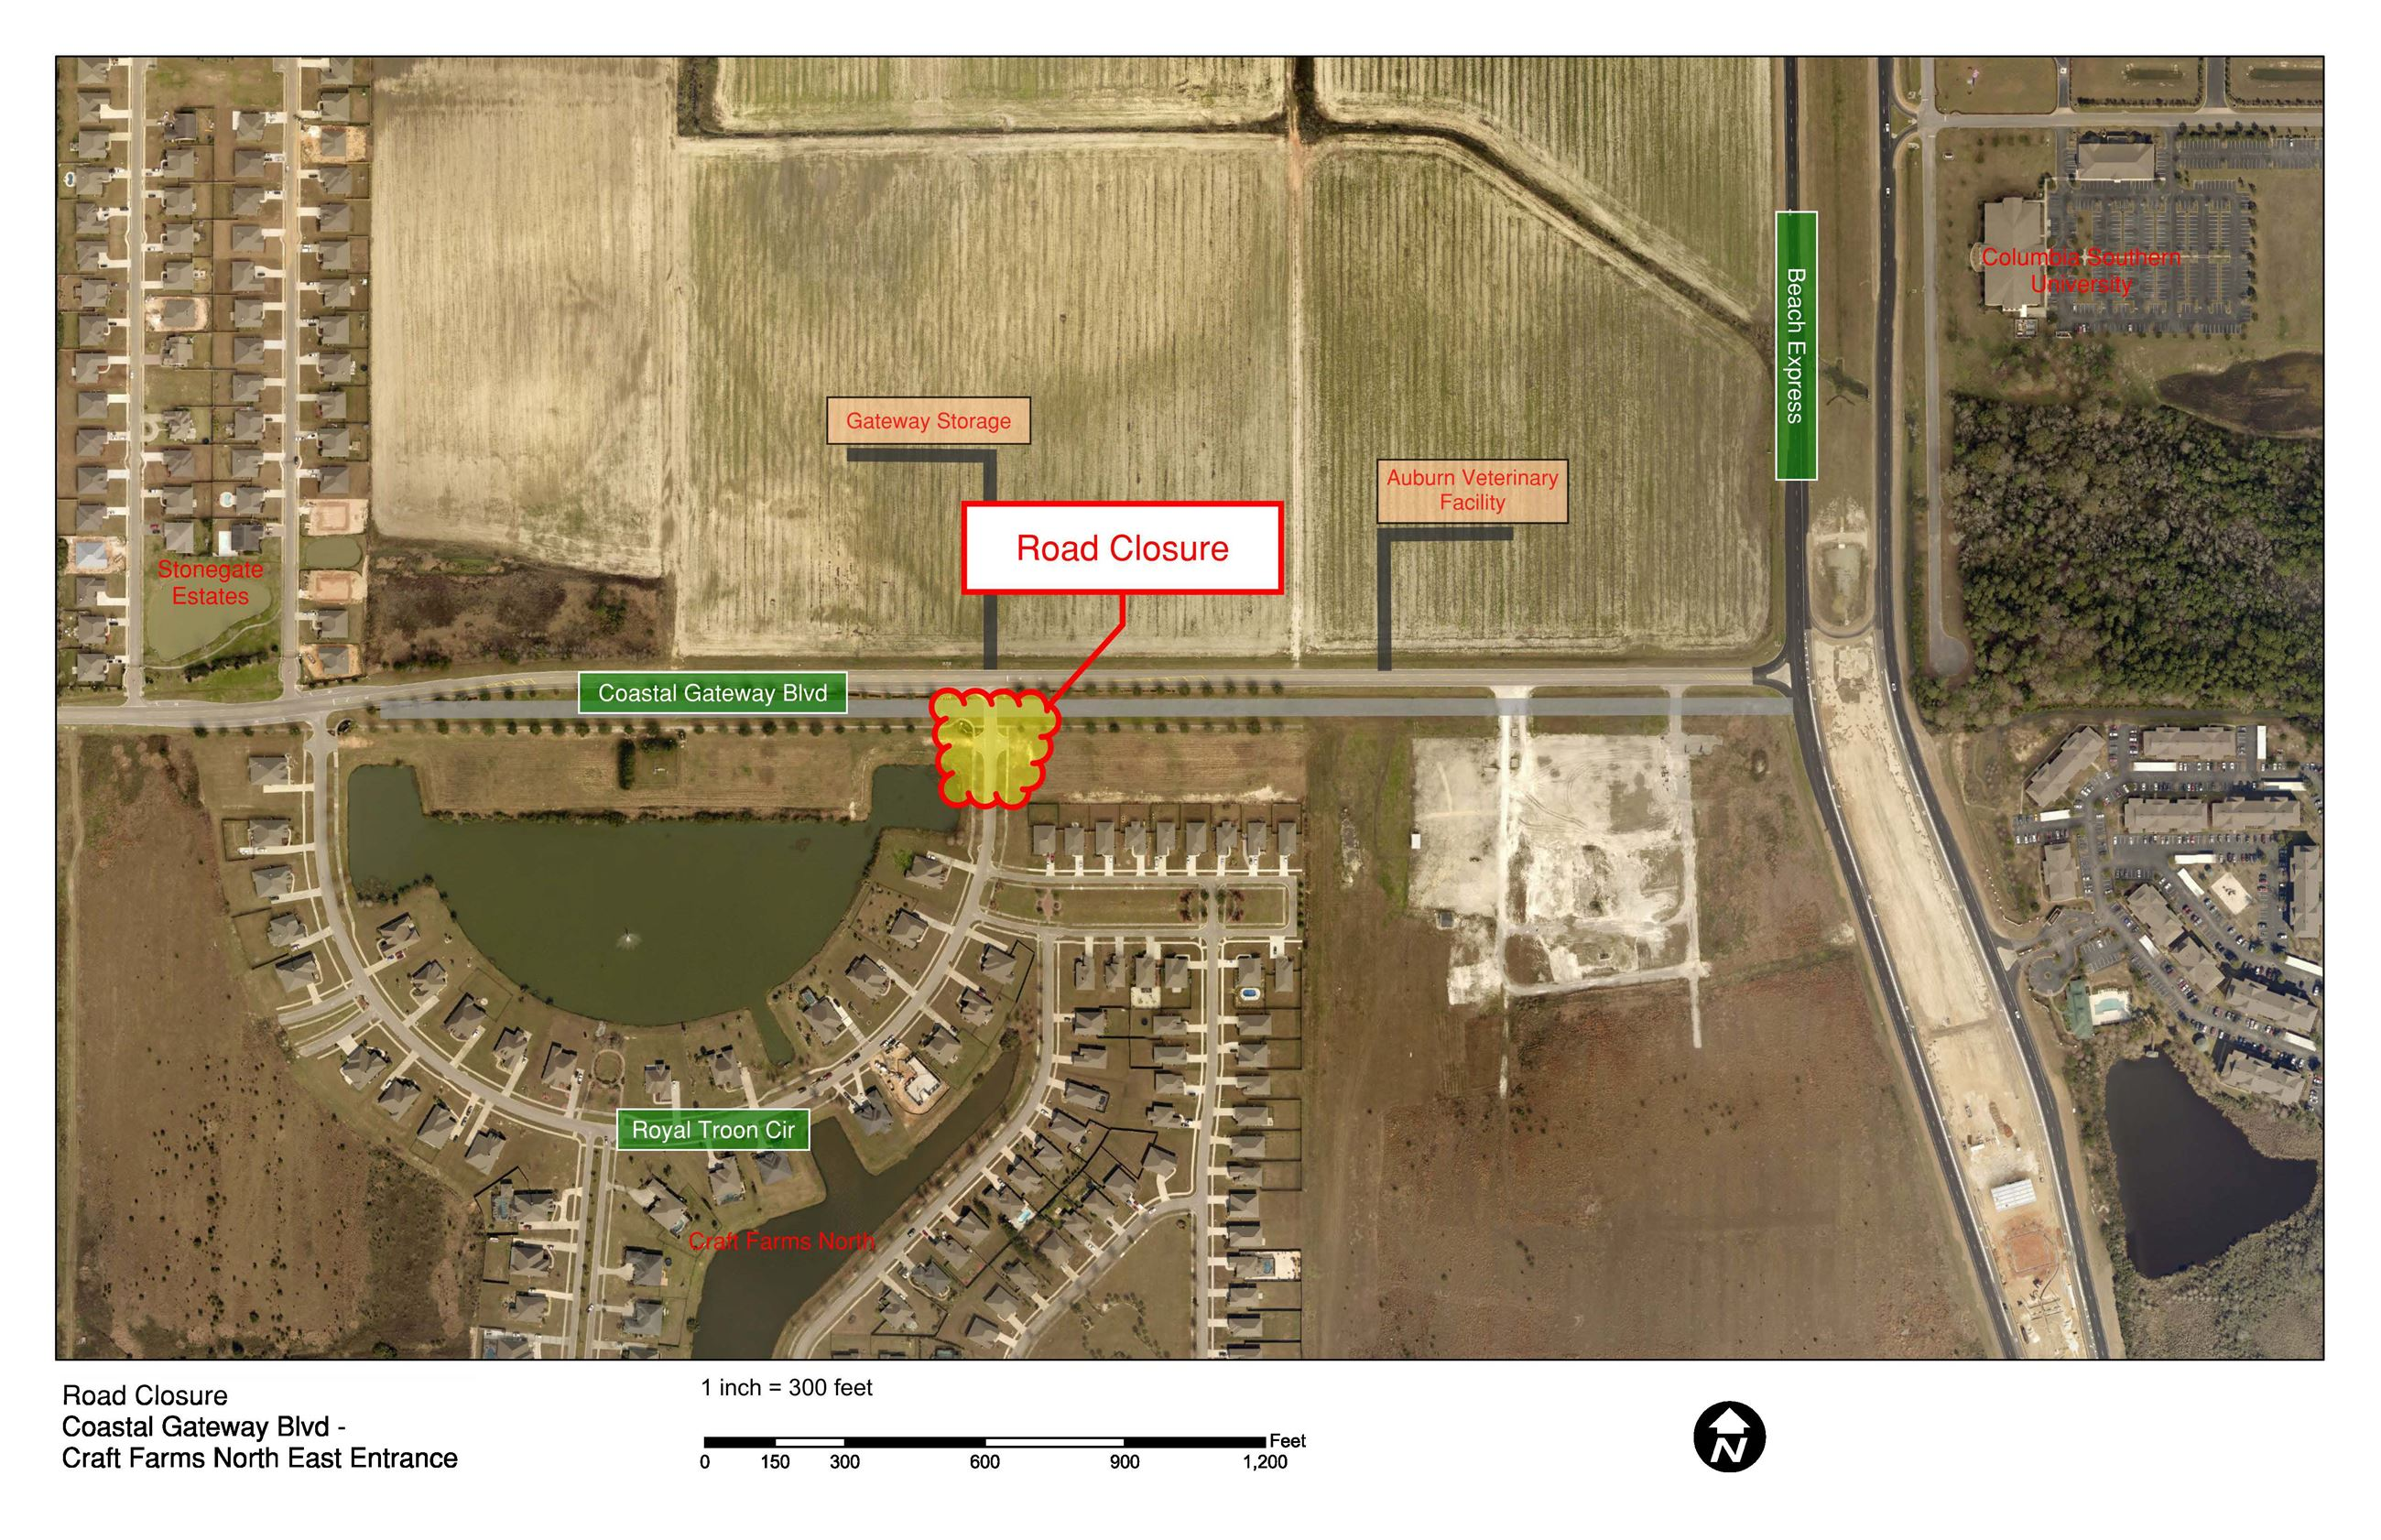 CFN-CGB East Entrance Road Closure - 03-25